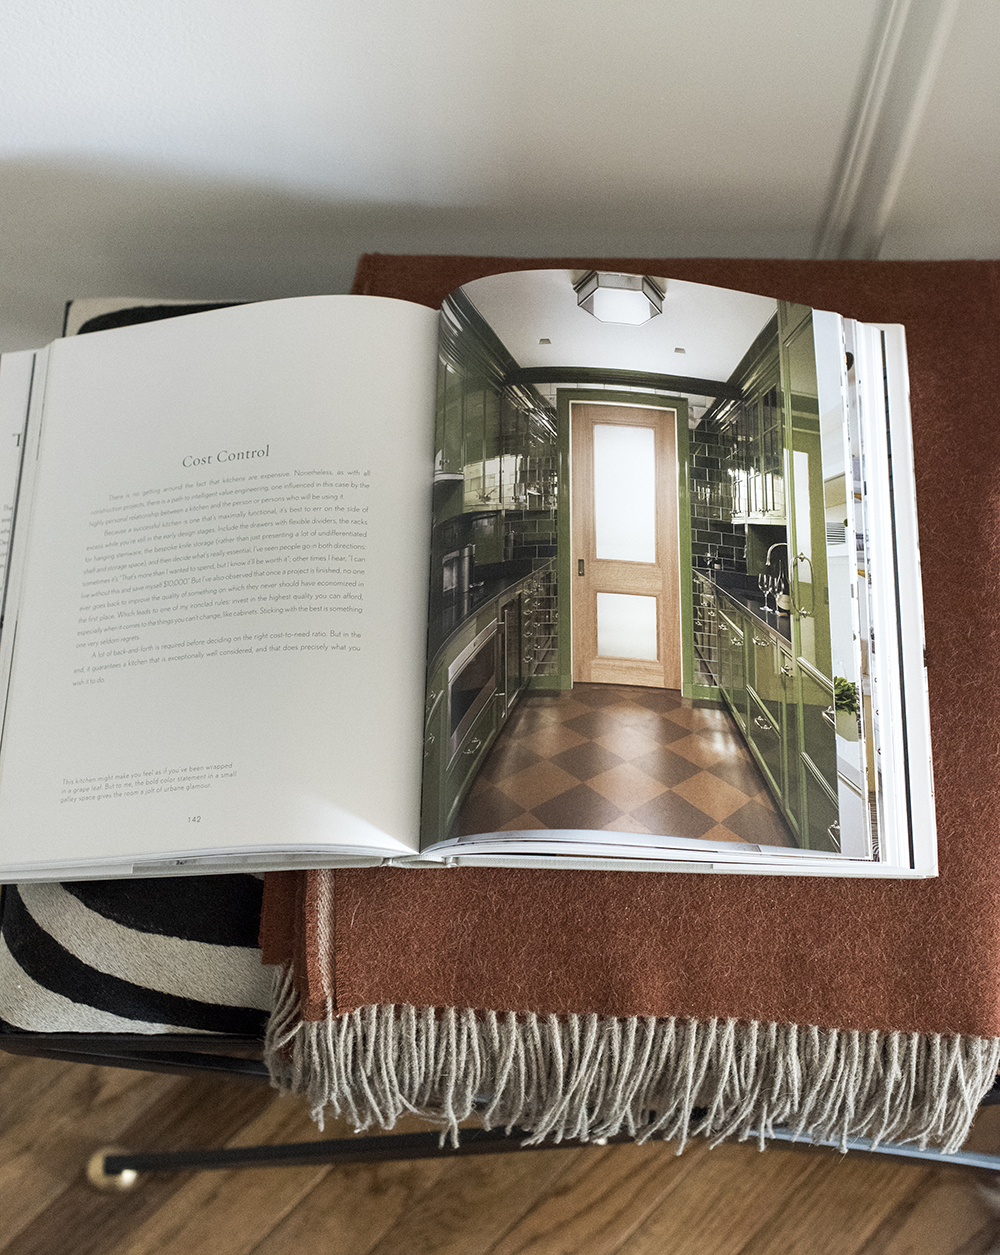 My Favorite Interior Design Books - roomfortuesday.com